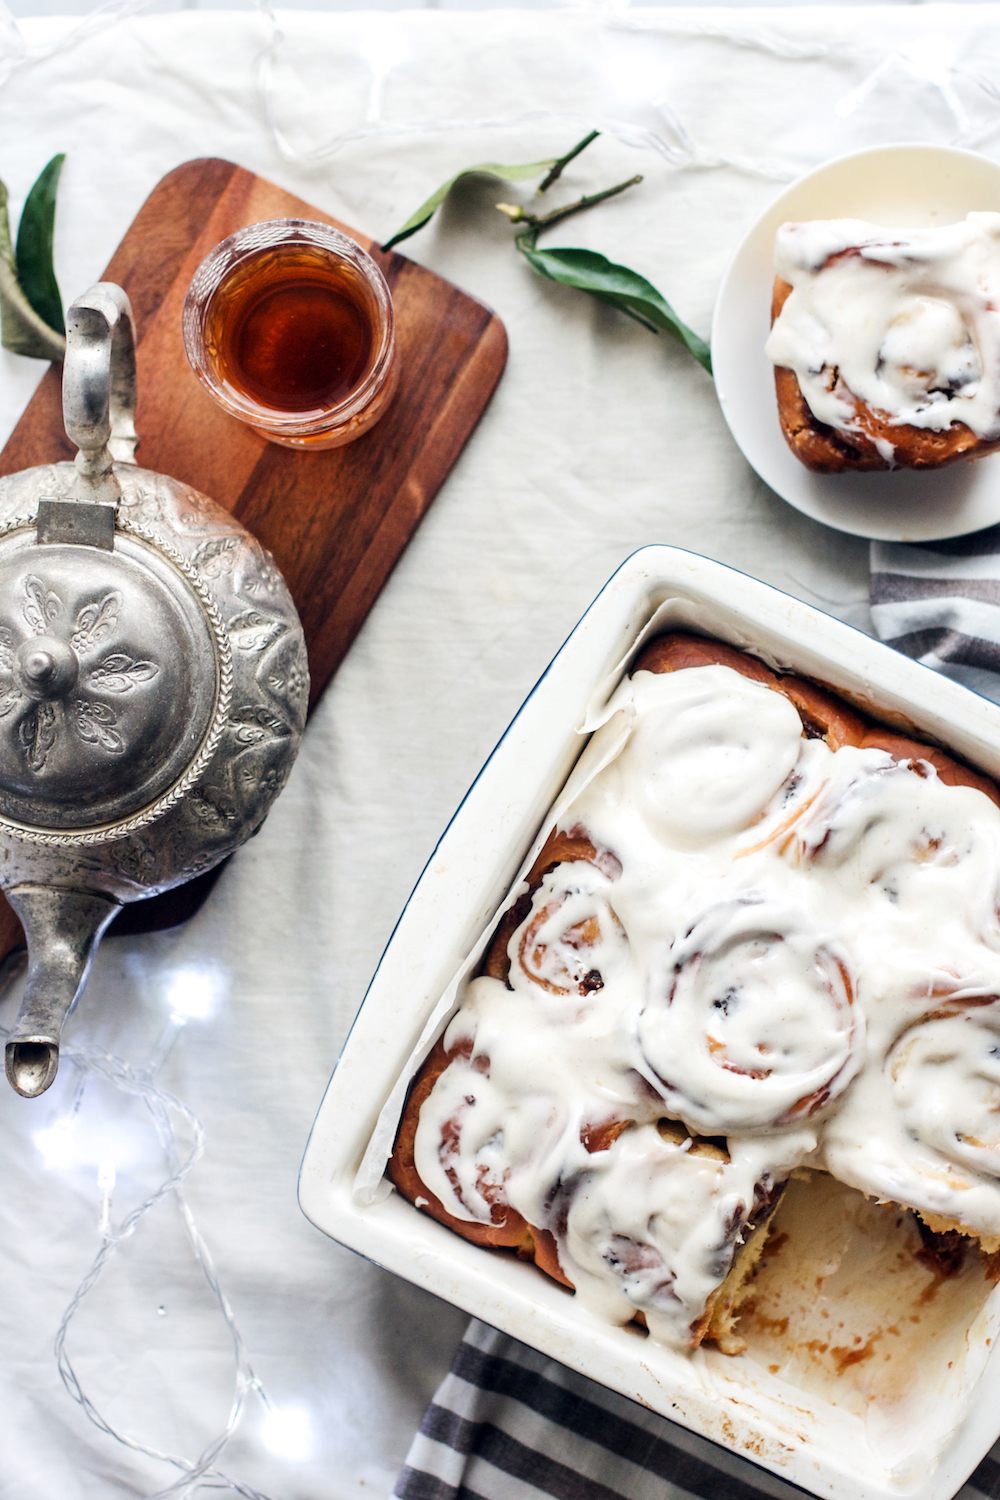 Ma'amoul Cinnamon Buns with Orange Blossom Cream Cheese Frosting | Ruby Josephine